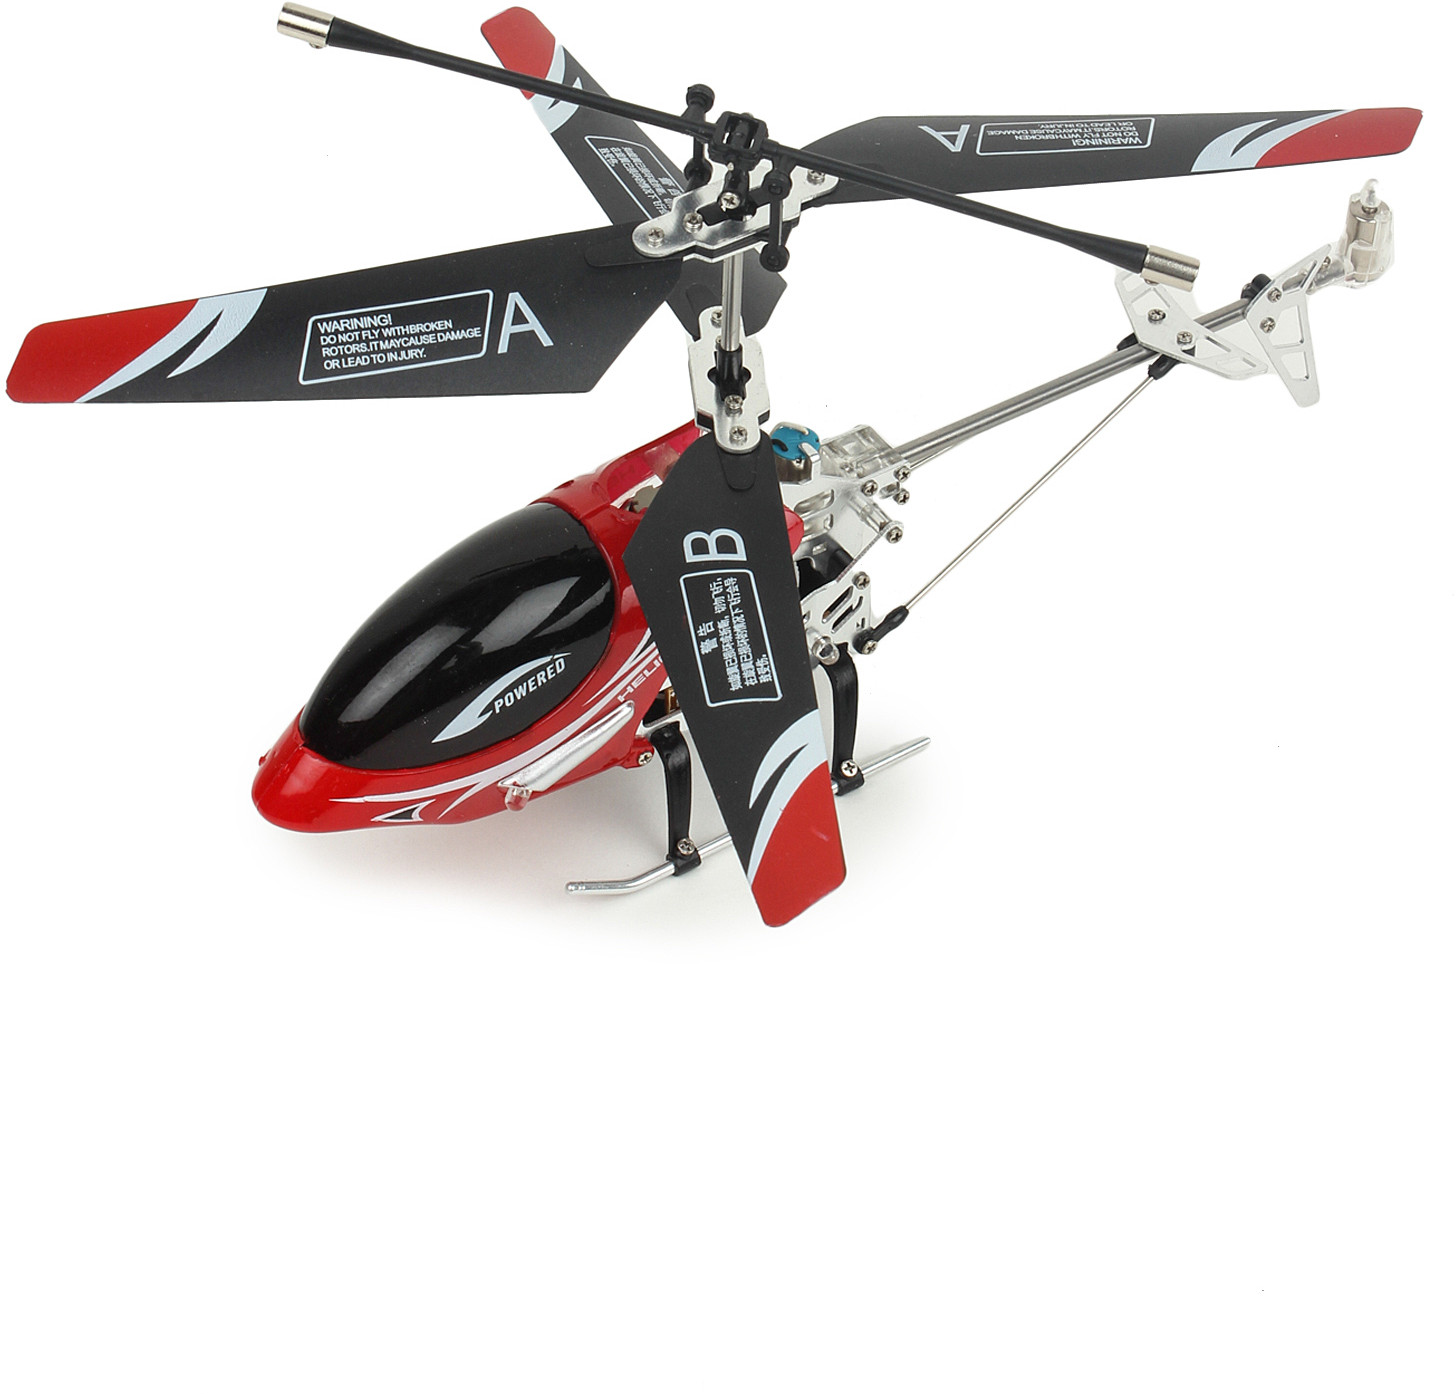 durable king helicopter with Flipkart Remote Control Helicopter on Nqd 1 12 Scale Electric Buggy Rc Rock Crawler Offer Samuderatrading I2445747 2007 01 Sale I additionally Eternal hellfire violates thermodynamics t shirt 235913516930523622 besides P Asian Glass Case Helicopter 1049048 furthermore 132025989539 besides Passenger Airplane Front View 1747.